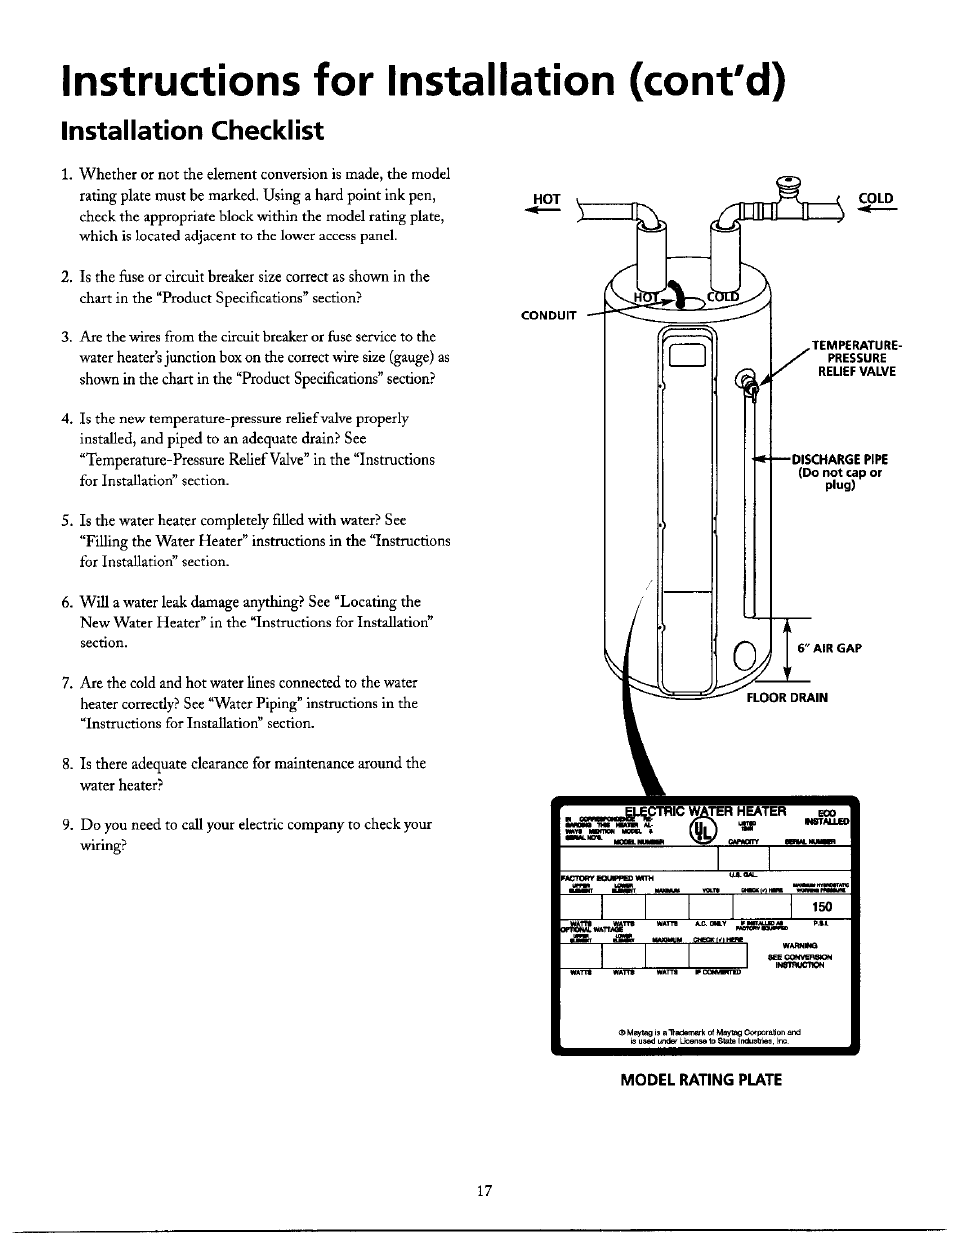 hight resolution of instructions for installation cont d installation checklist maytag he21250s user manual page 17 32